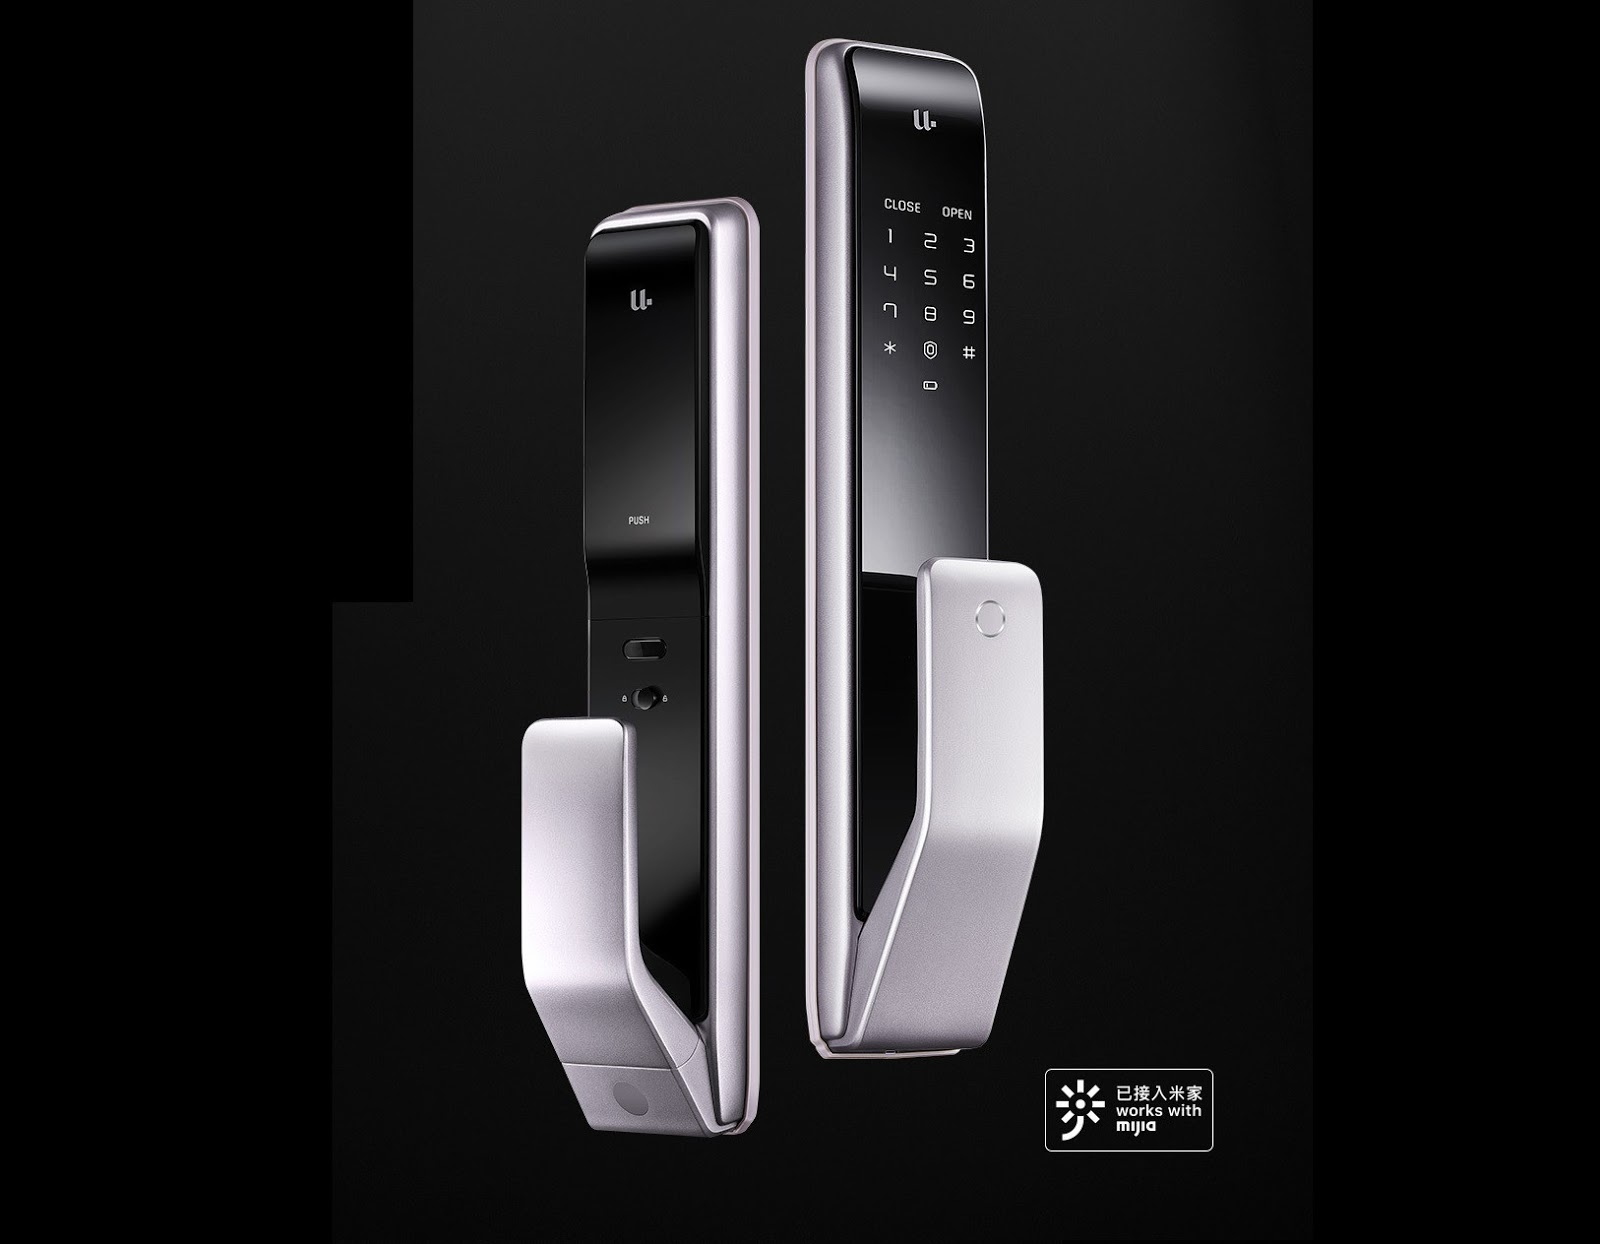 xiaomi mijia u m2 smart lock